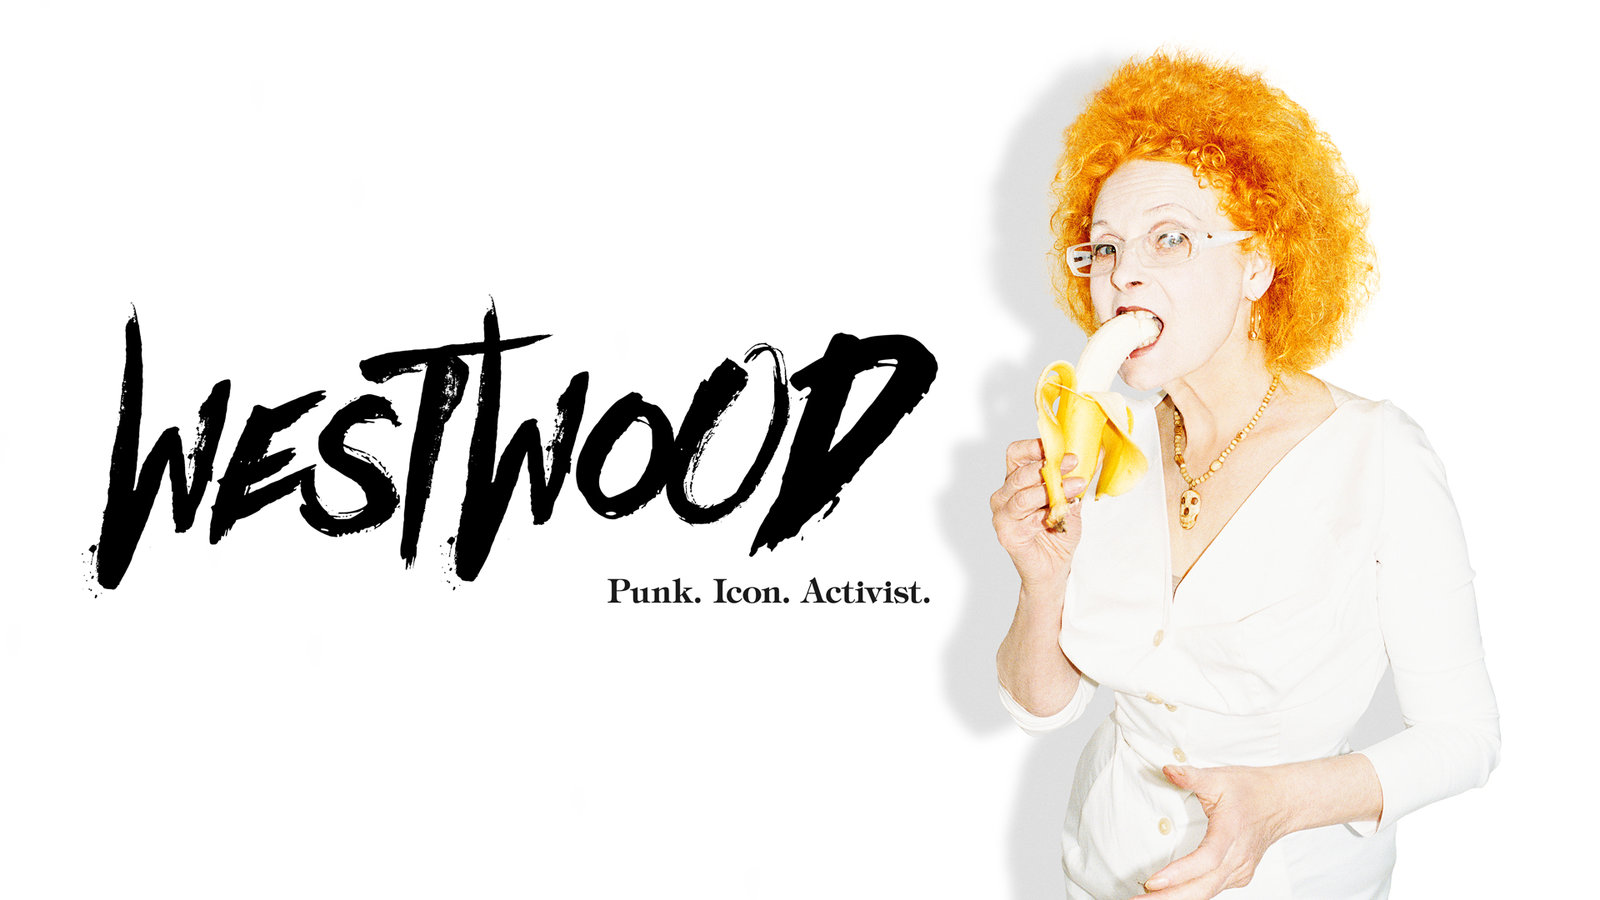 Westwood: Punk. Icon. Activist - The Life and Work of Fashion Icon Vivienne Westwood